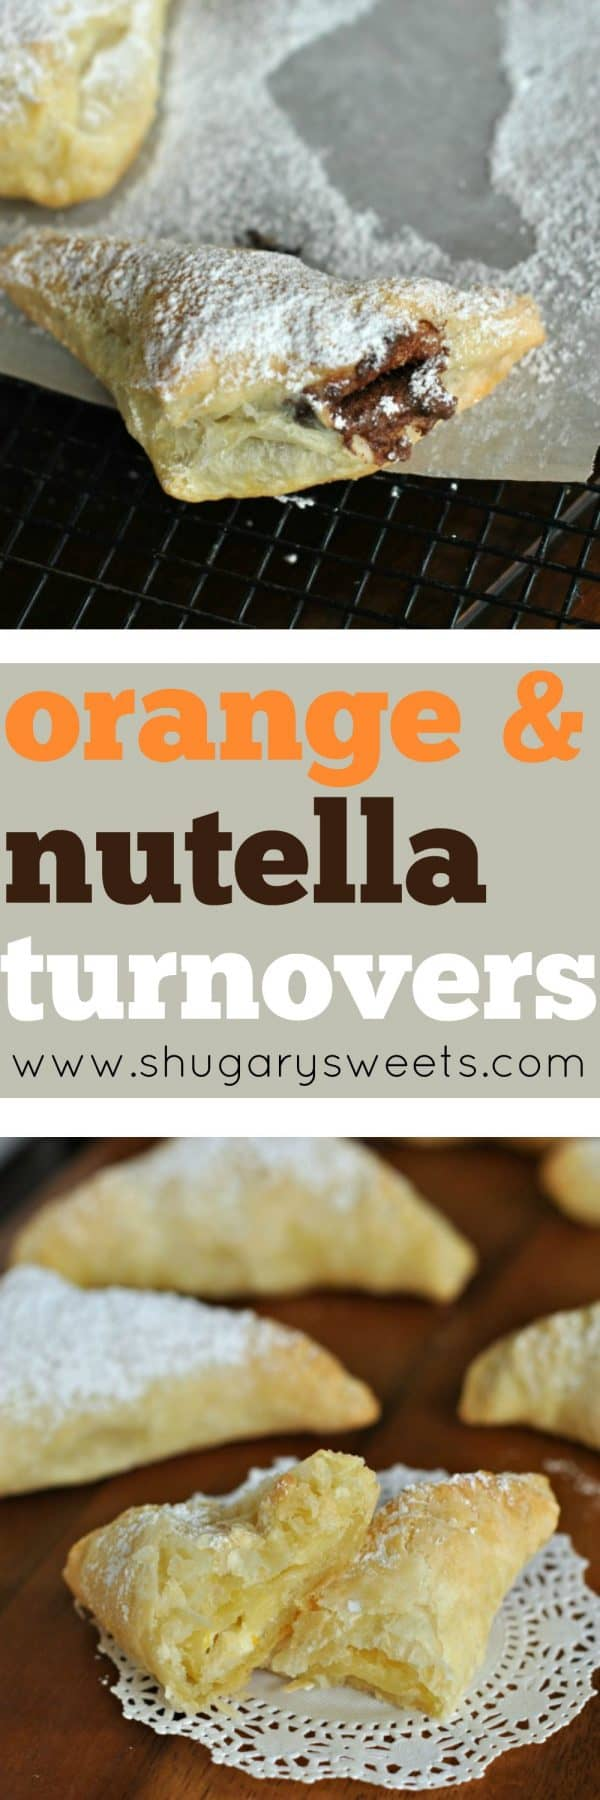 These turnovers are made super simple by using Pepperidge Farm Puff Pastry! Half are made with Nutella and the other half are made with a Creamy Orange Cheesecake filling! You decide your favorite.